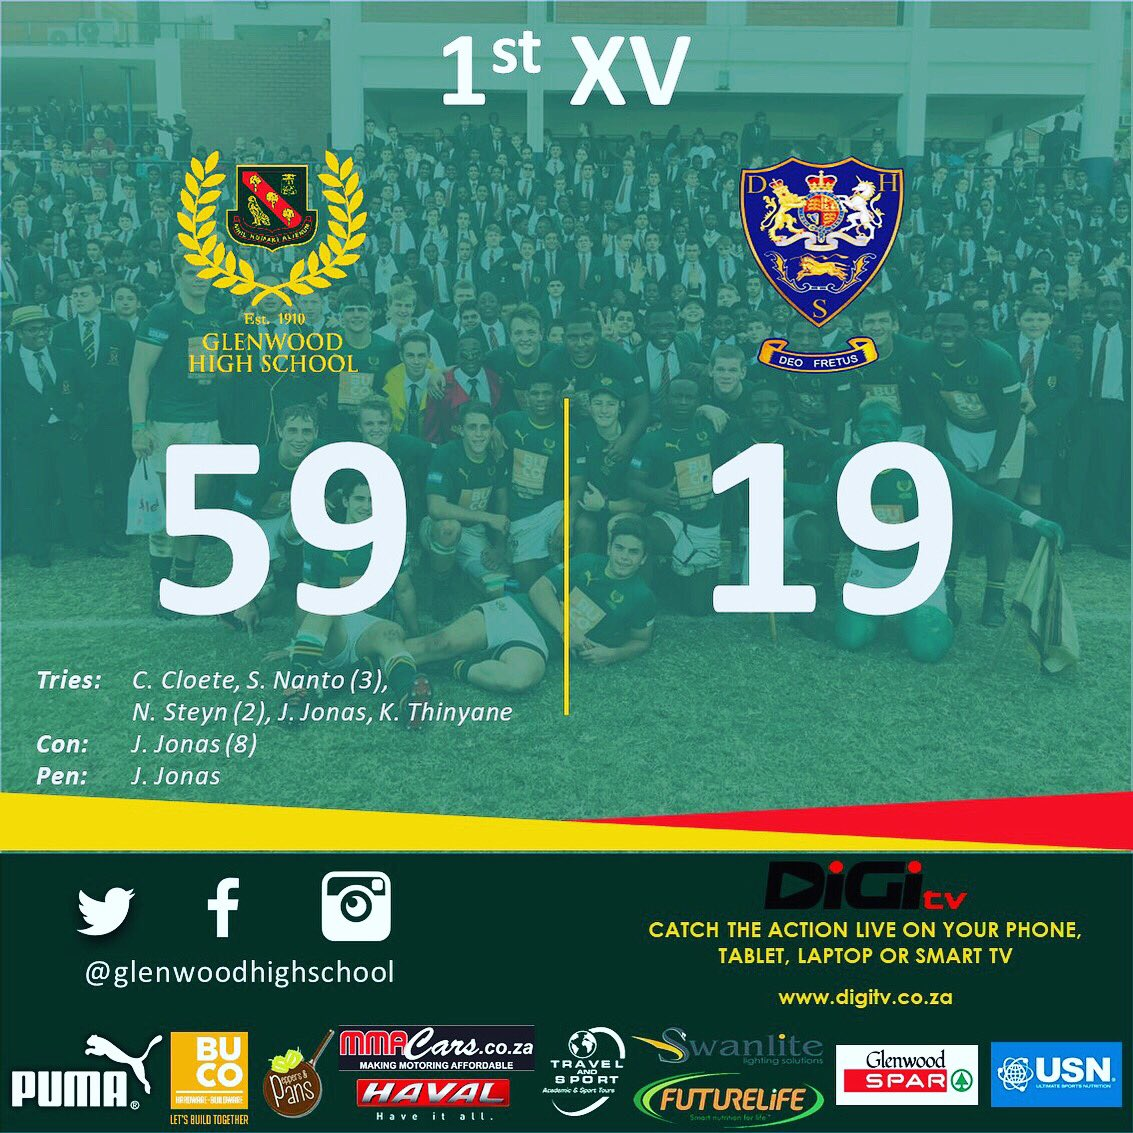 D7-9UzzXoAAAgrR School of Rugby | School of Rugby Rankings - 23 April 2018 - School of Rugby